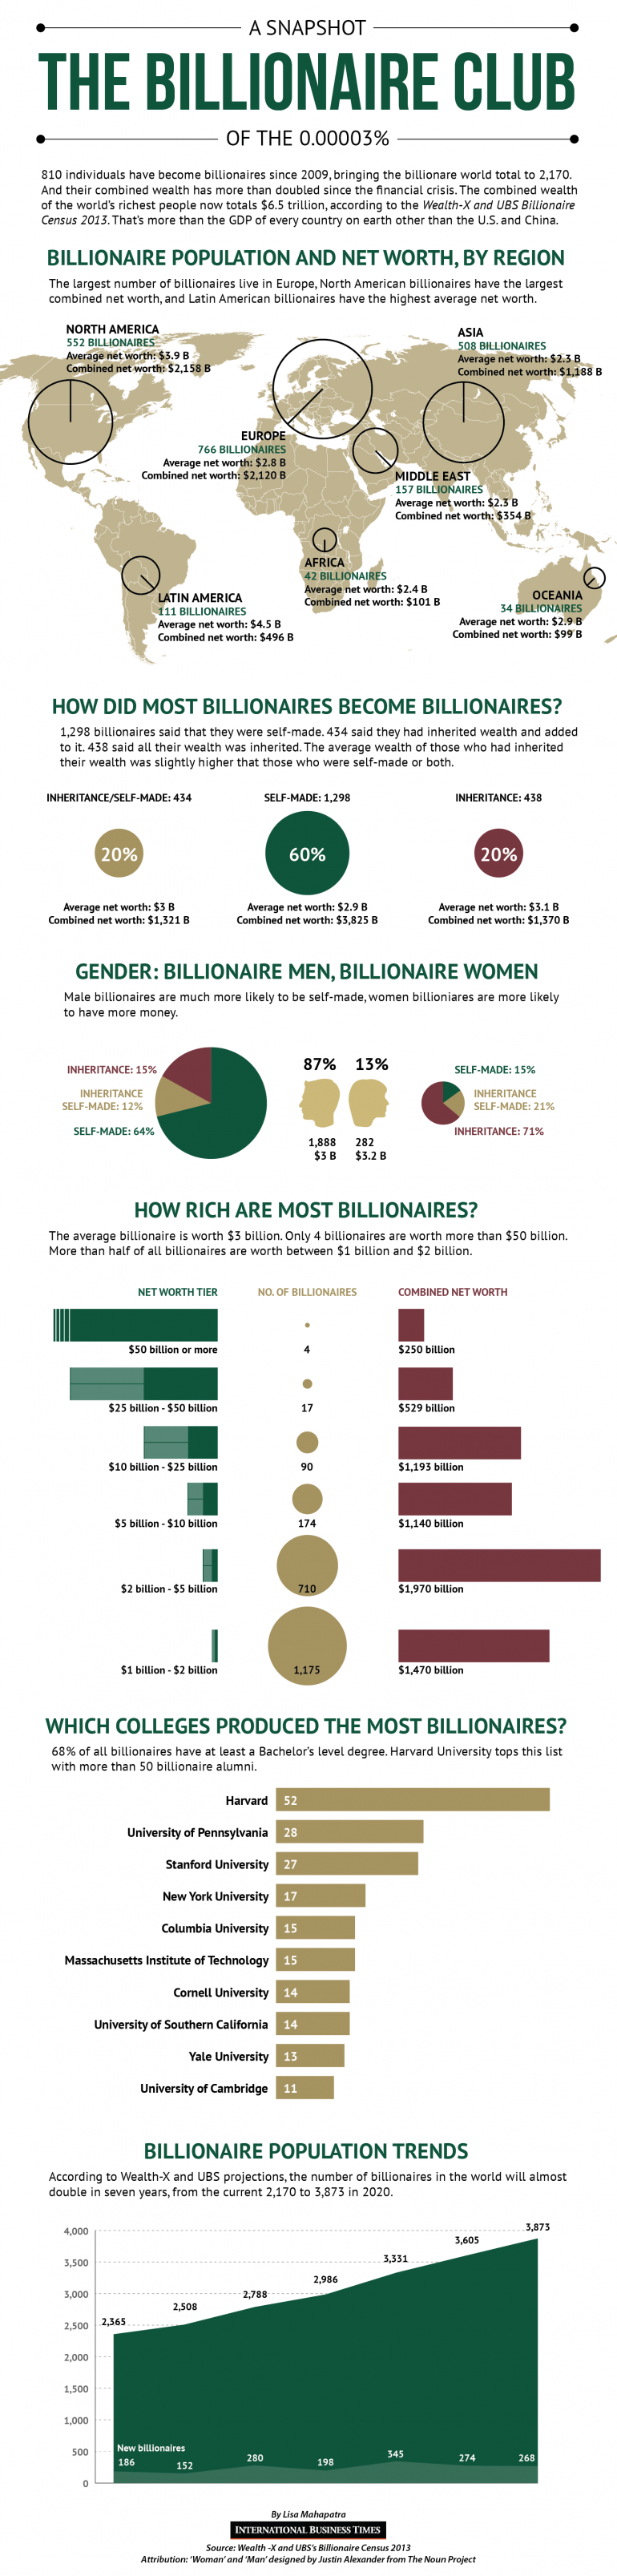 2. Billionaire Census A Snapshot of The 0.00003 Percent